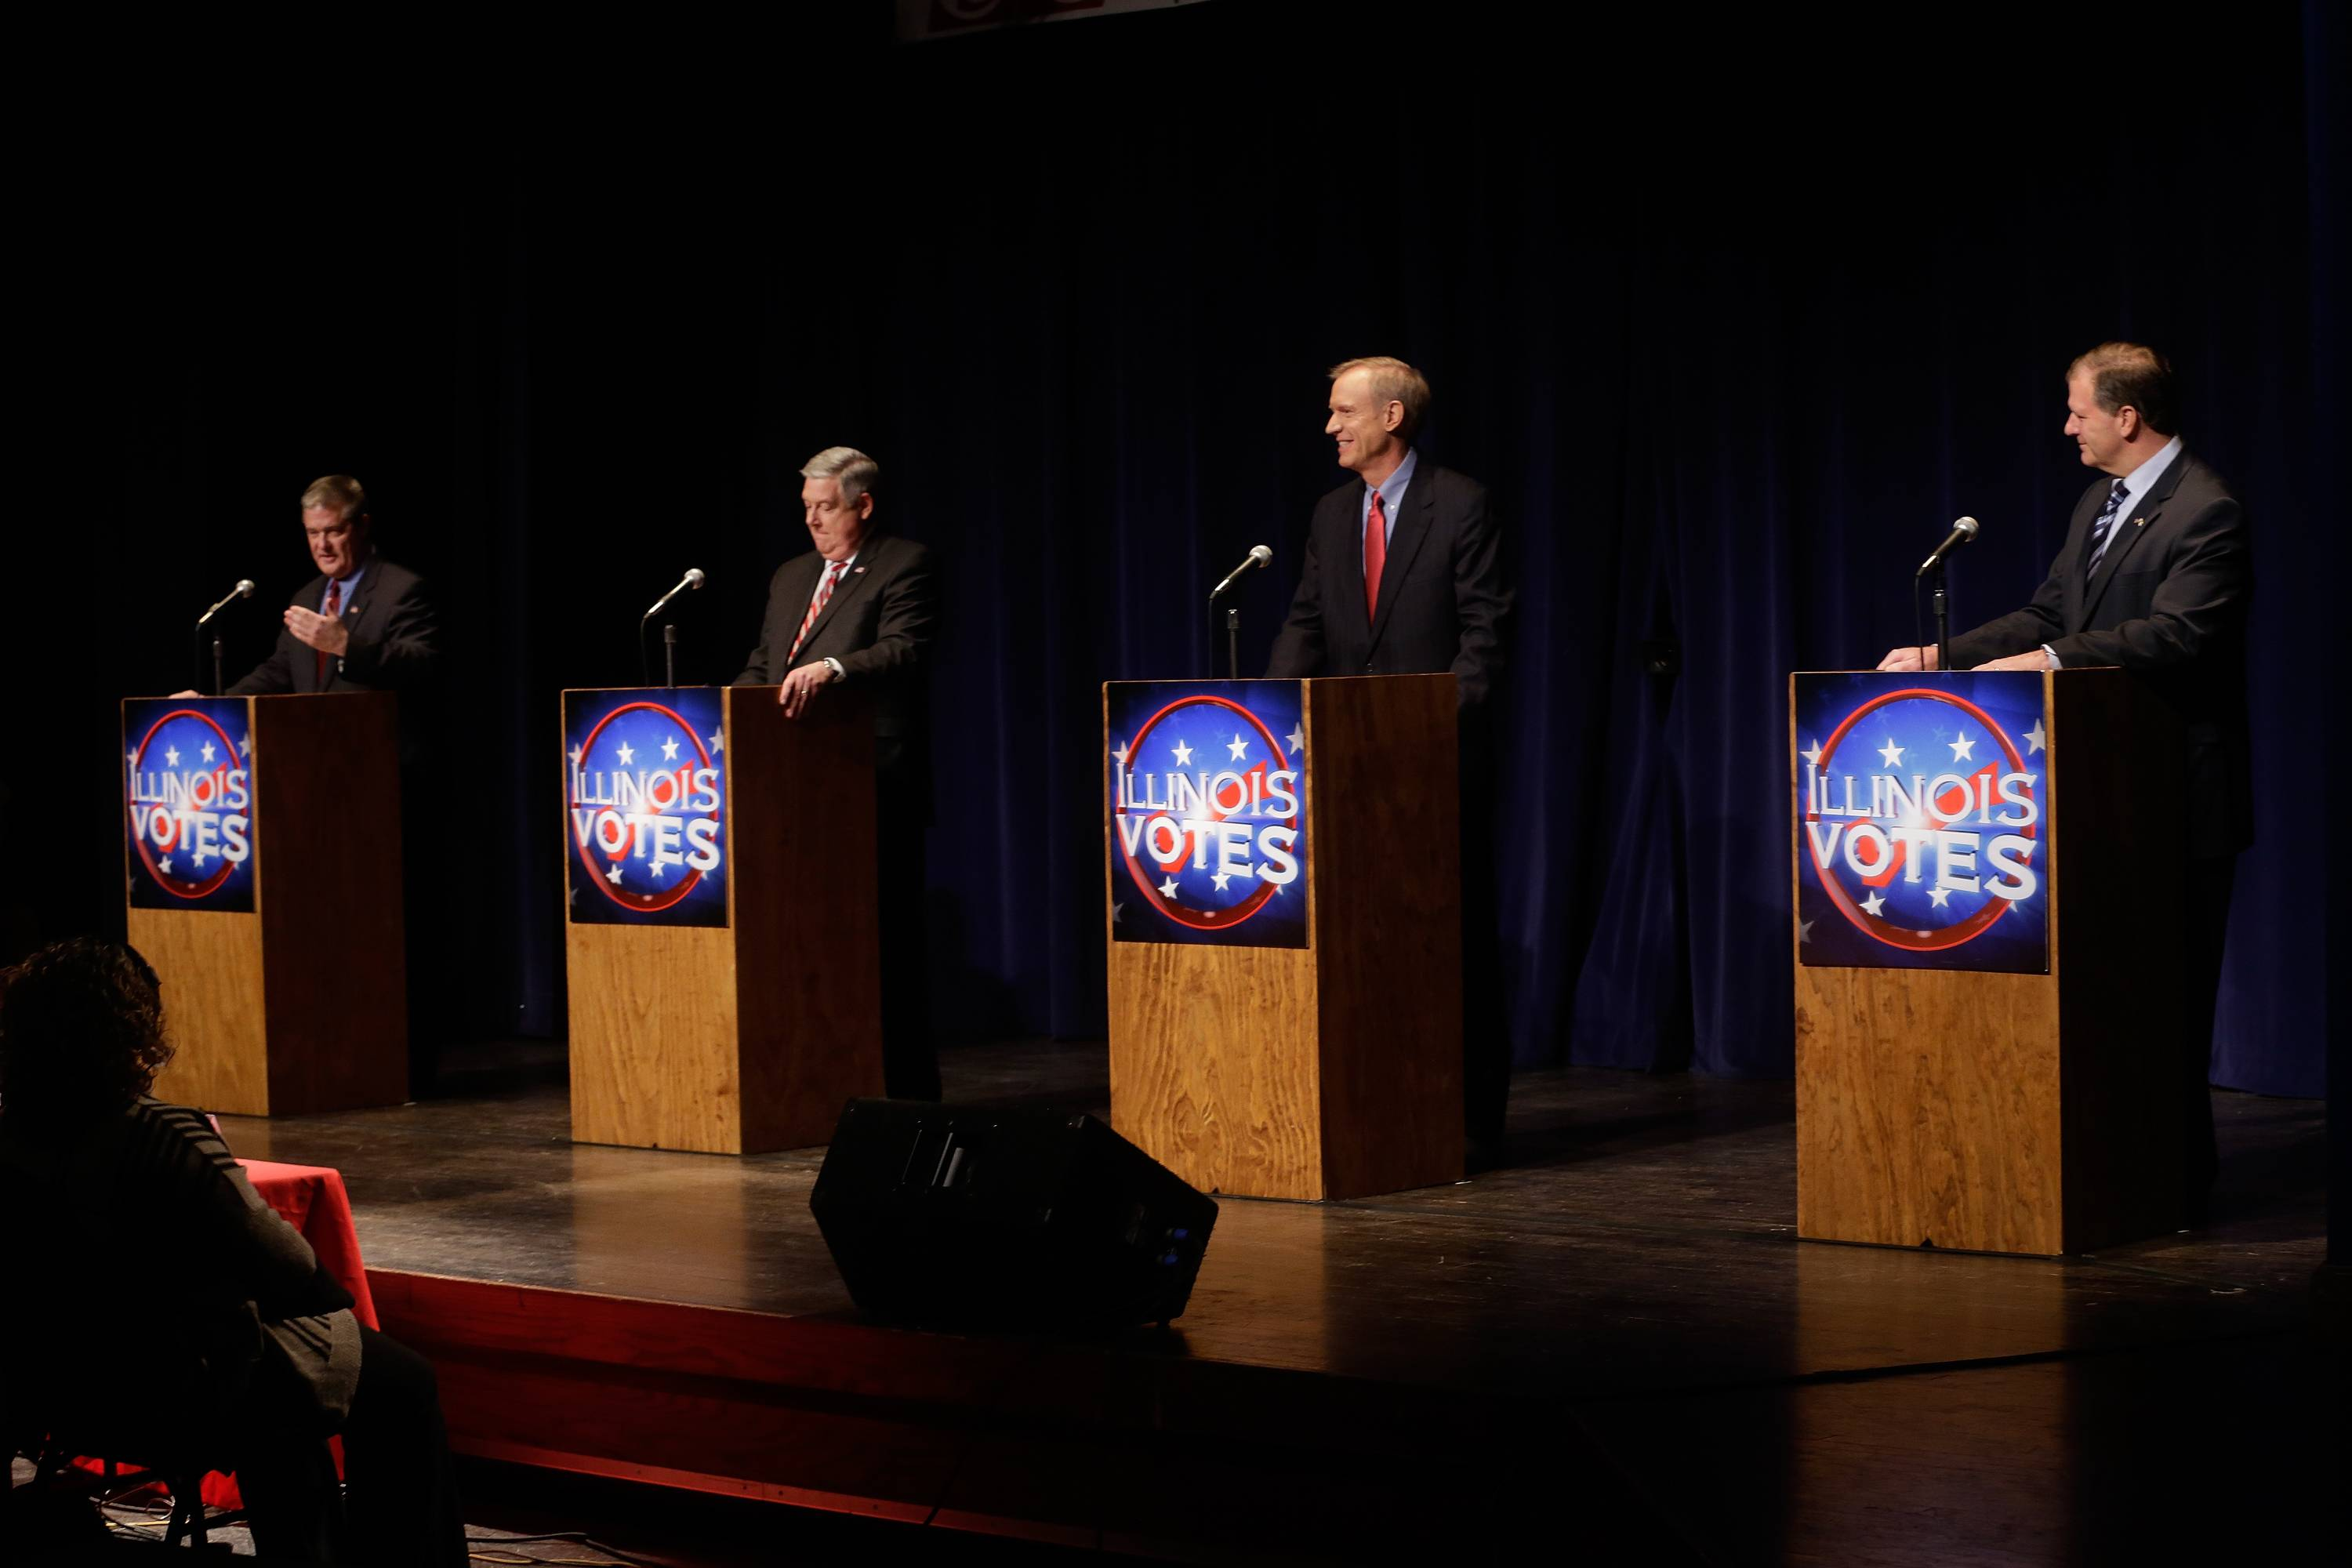 State Treasurer Dan Rutherford, from left, state Sen. Kirk Dillard, businessman Bruce Rauner and state Sen. Bill Brady participate in a Republican gubernatorial debate Tuesday in Springfield. The primary is March 18.